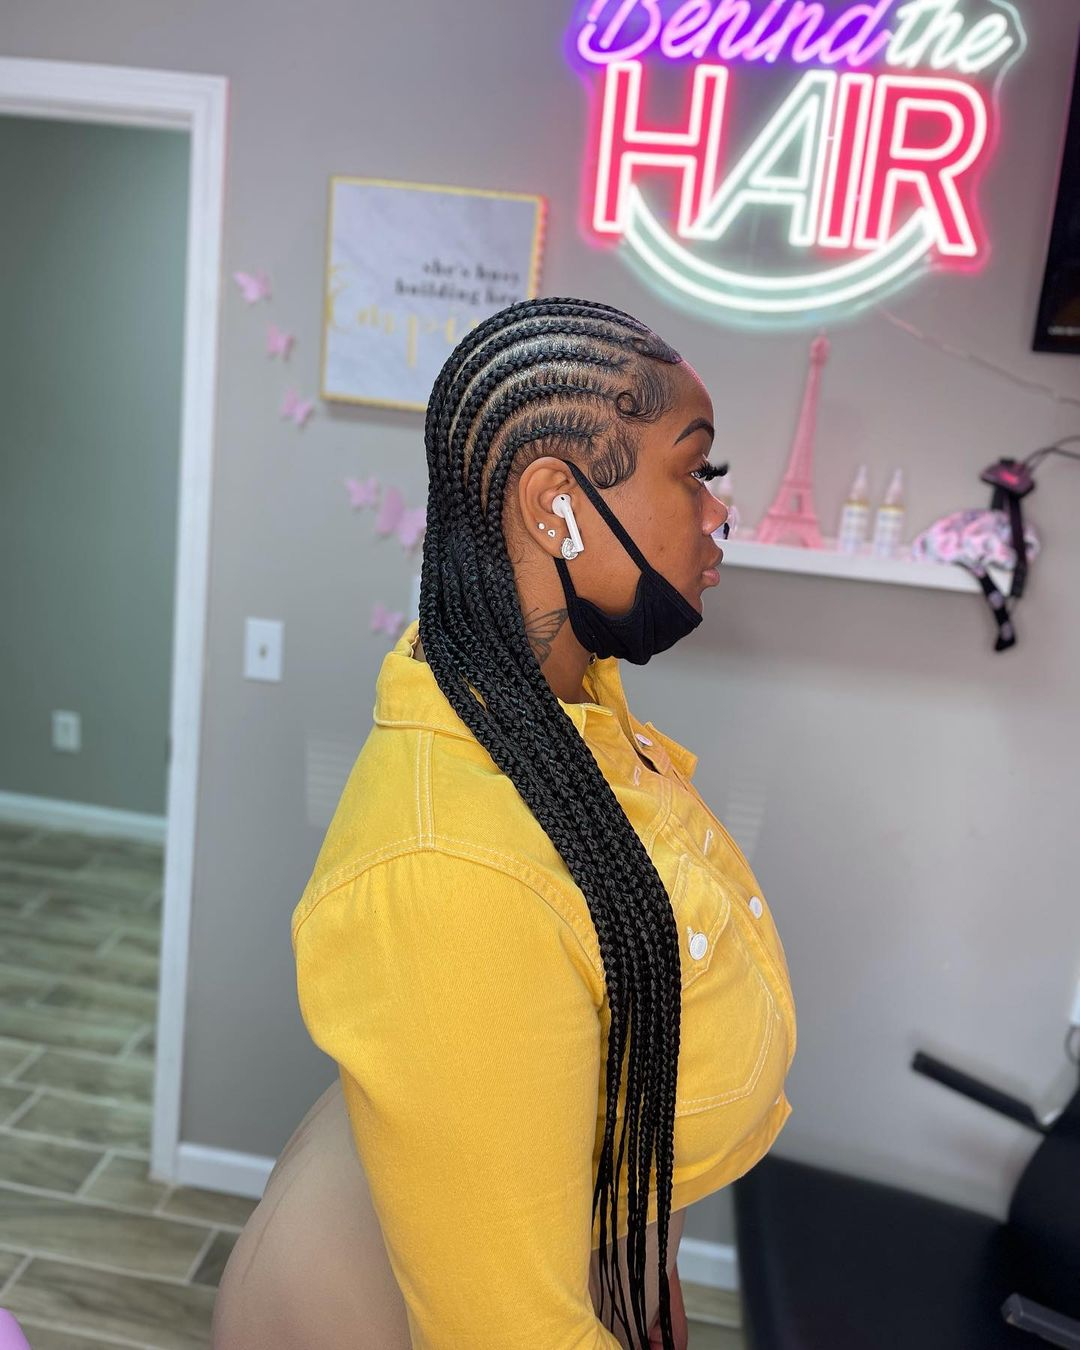 Synthetic Braiding Hair Lace Frontal Wigs Full Lace 32inches Black Wigs For Women Wig Braid Africa Braided Wigs Wholesale